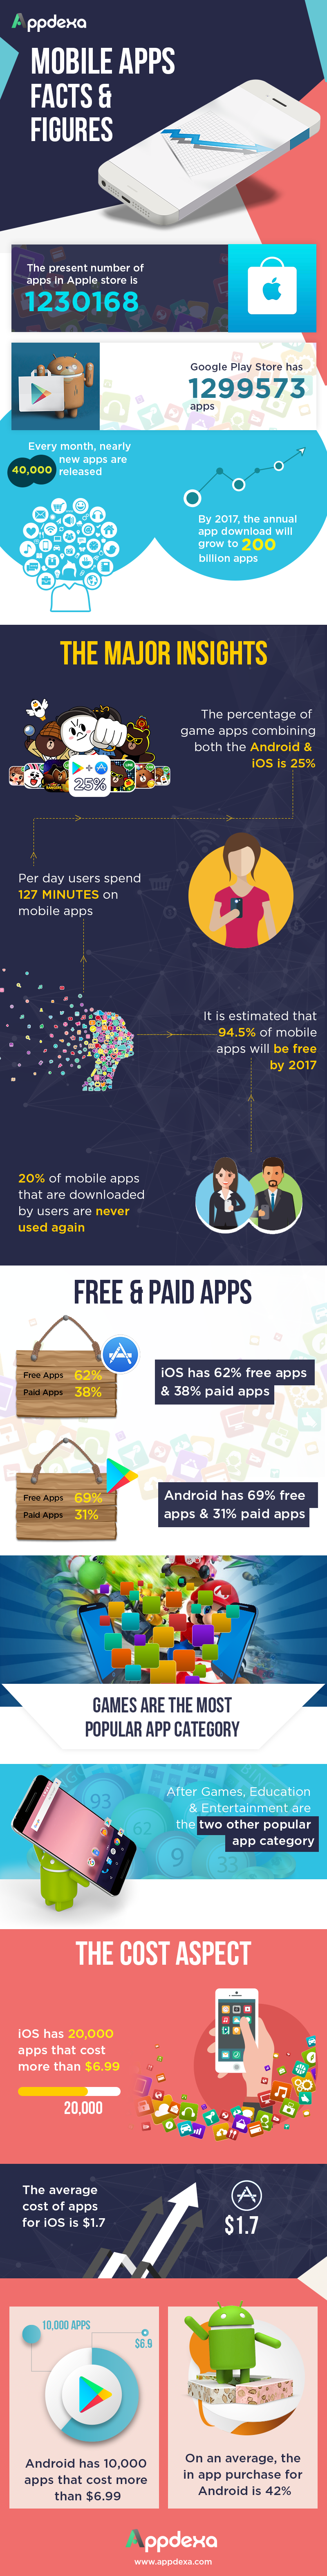 Appdexa Research Analysis: Mobile Apps Facts And Figures - Image 2